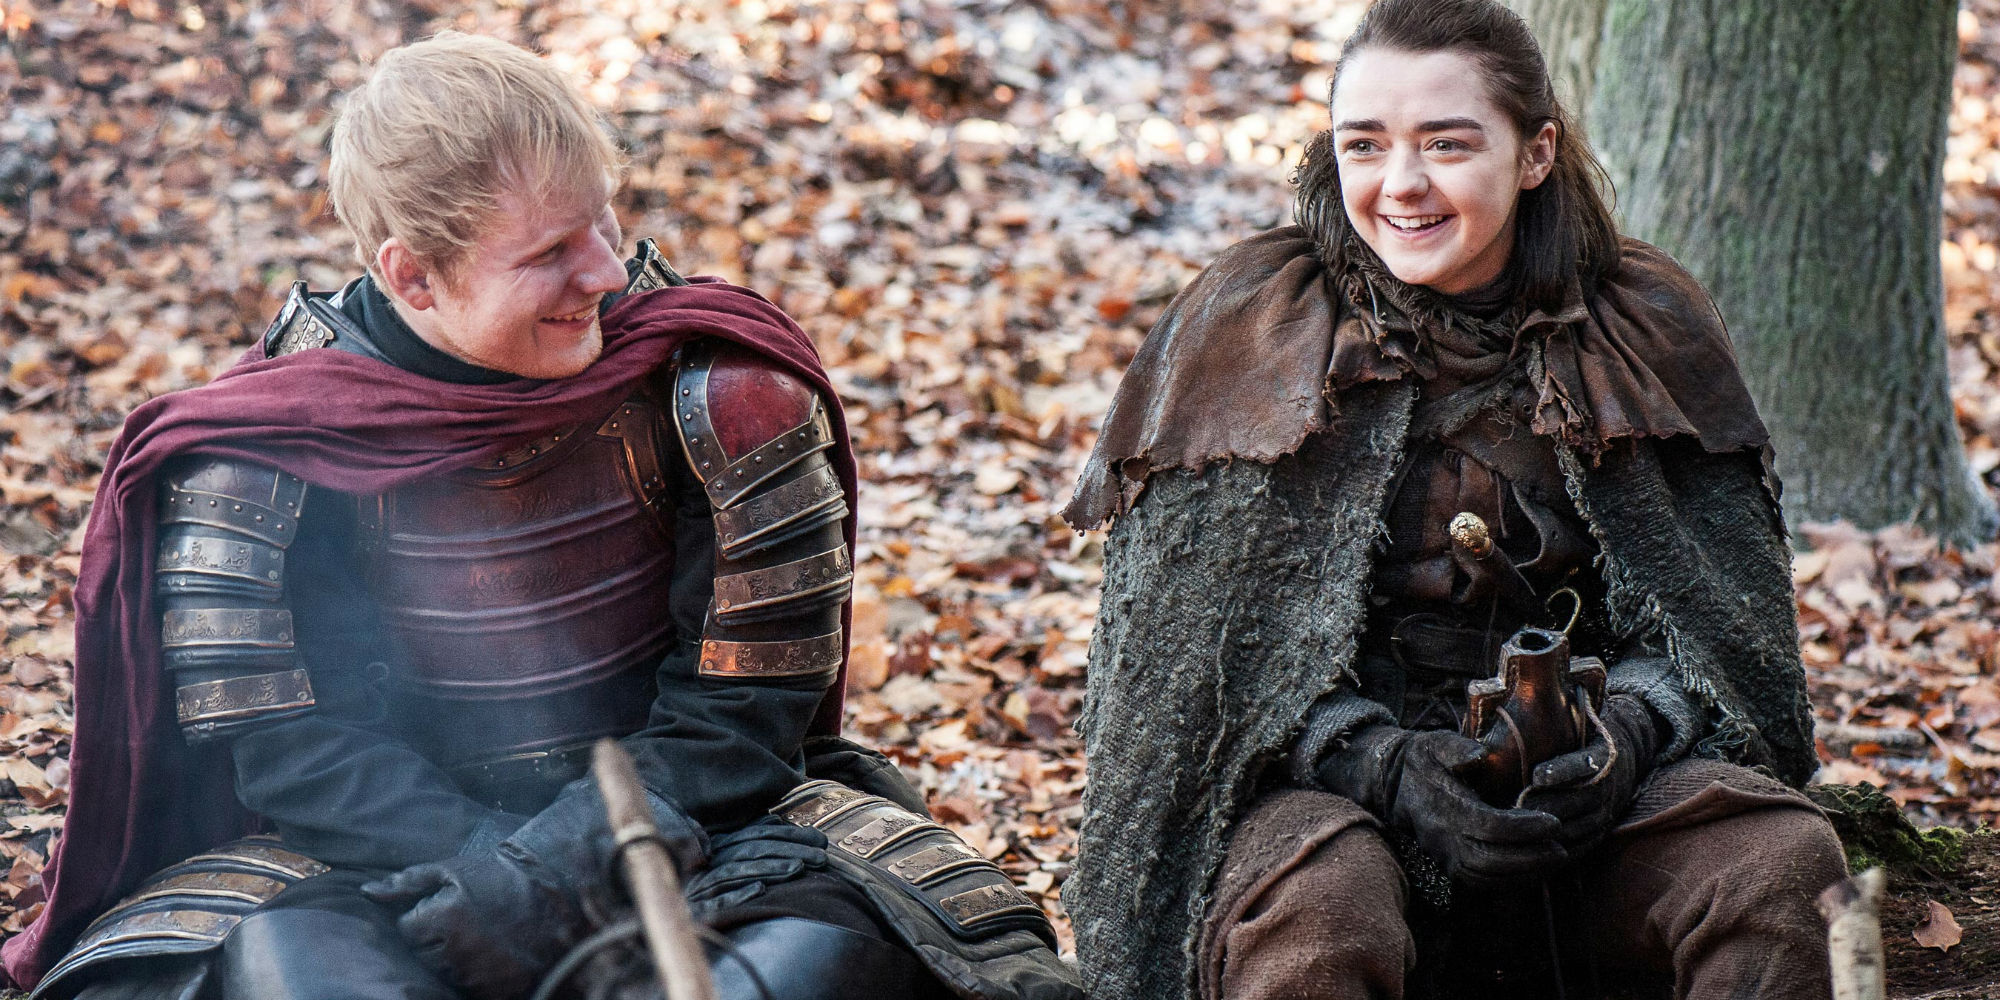 Ed Sheeran and Maisie Williams in Game of Thrones